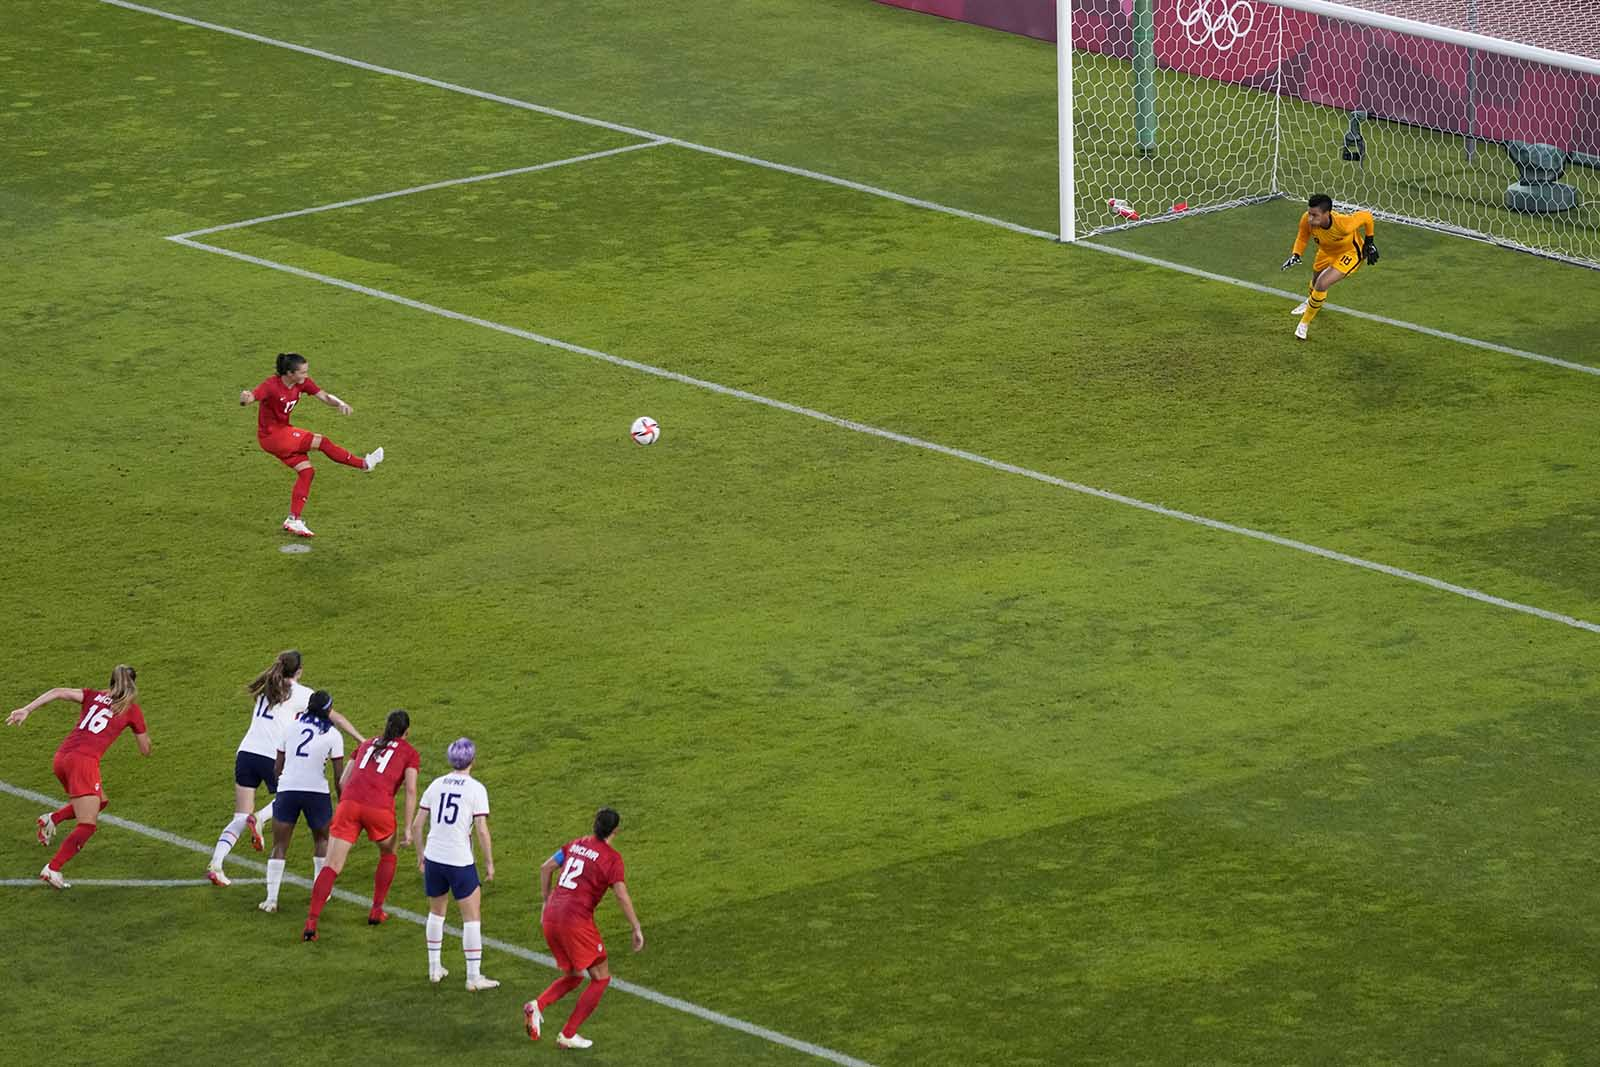 The US women's soccer team misses out on gold after semifinal loss